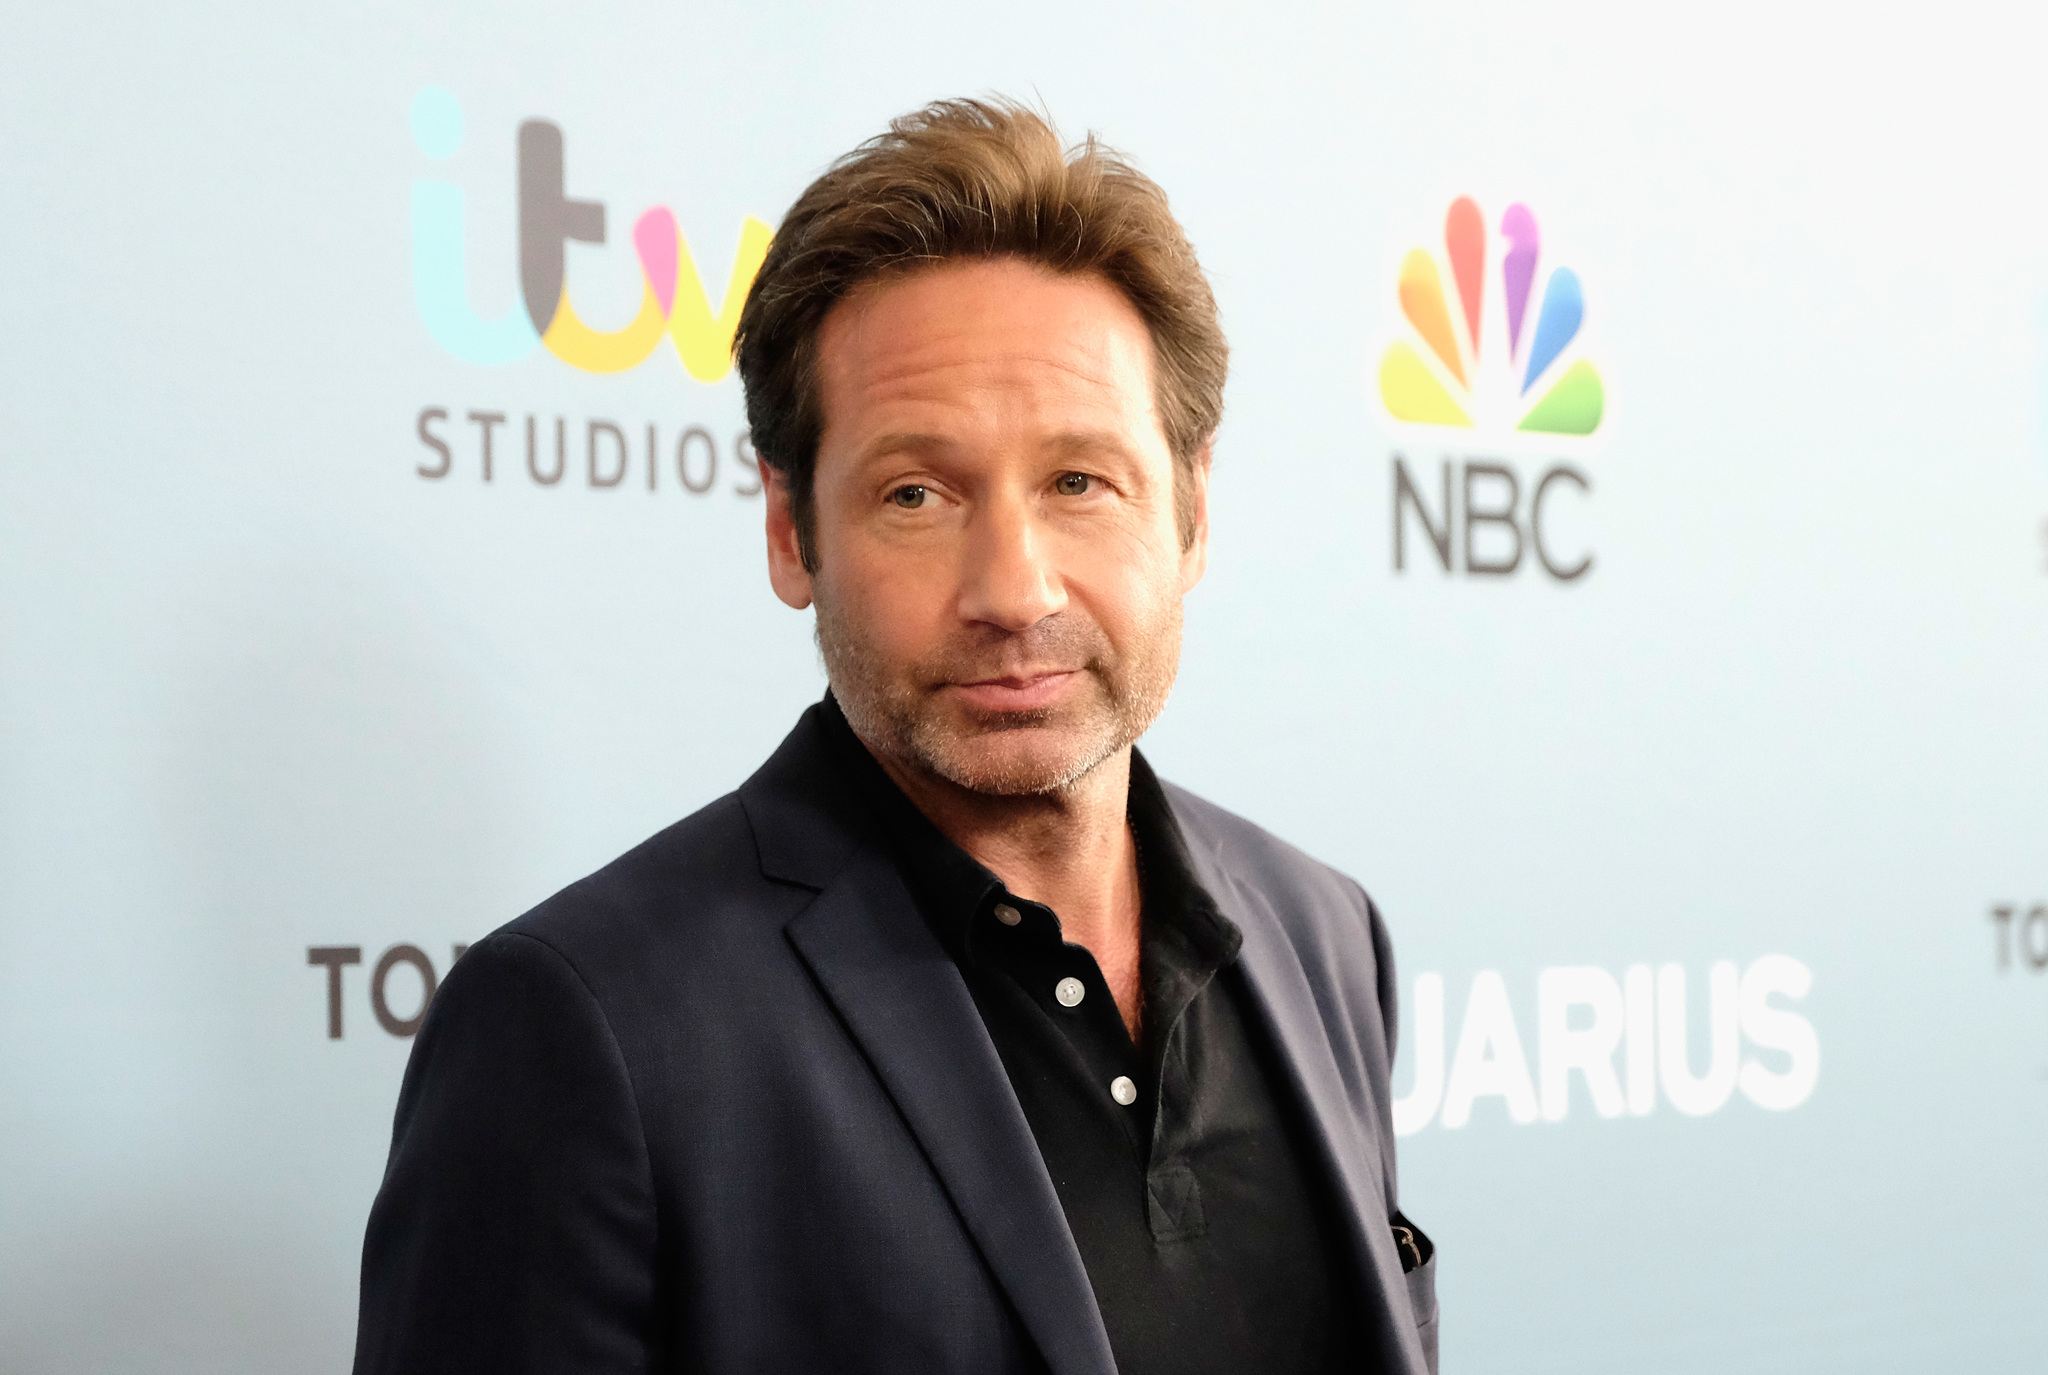 David Duchovny at an event for Aquarius (2015)